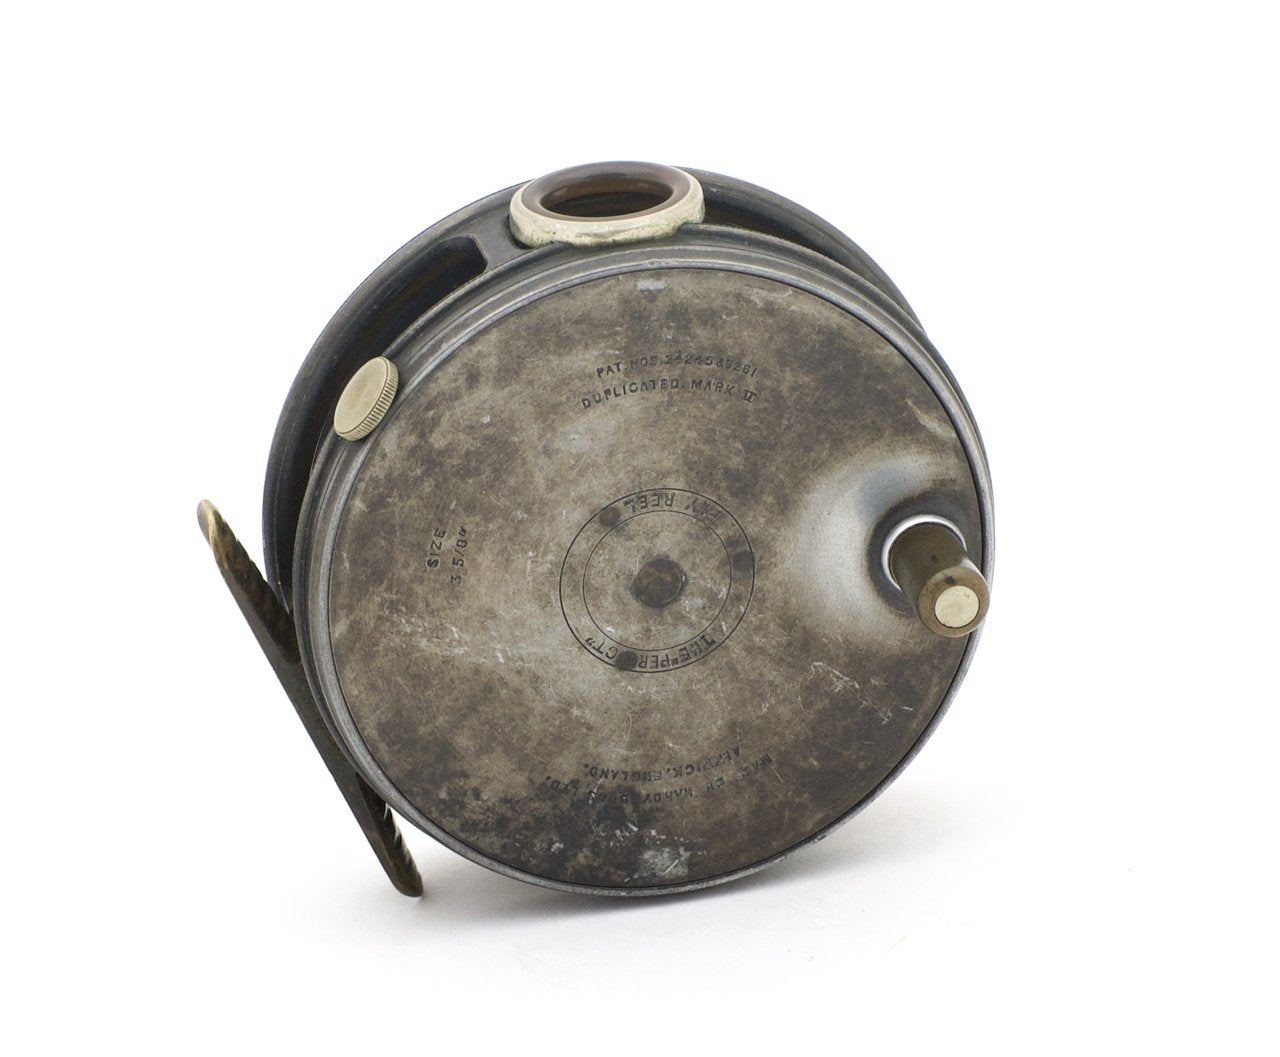 "Hardy Perfect 3 5/8"" Fly Reel"